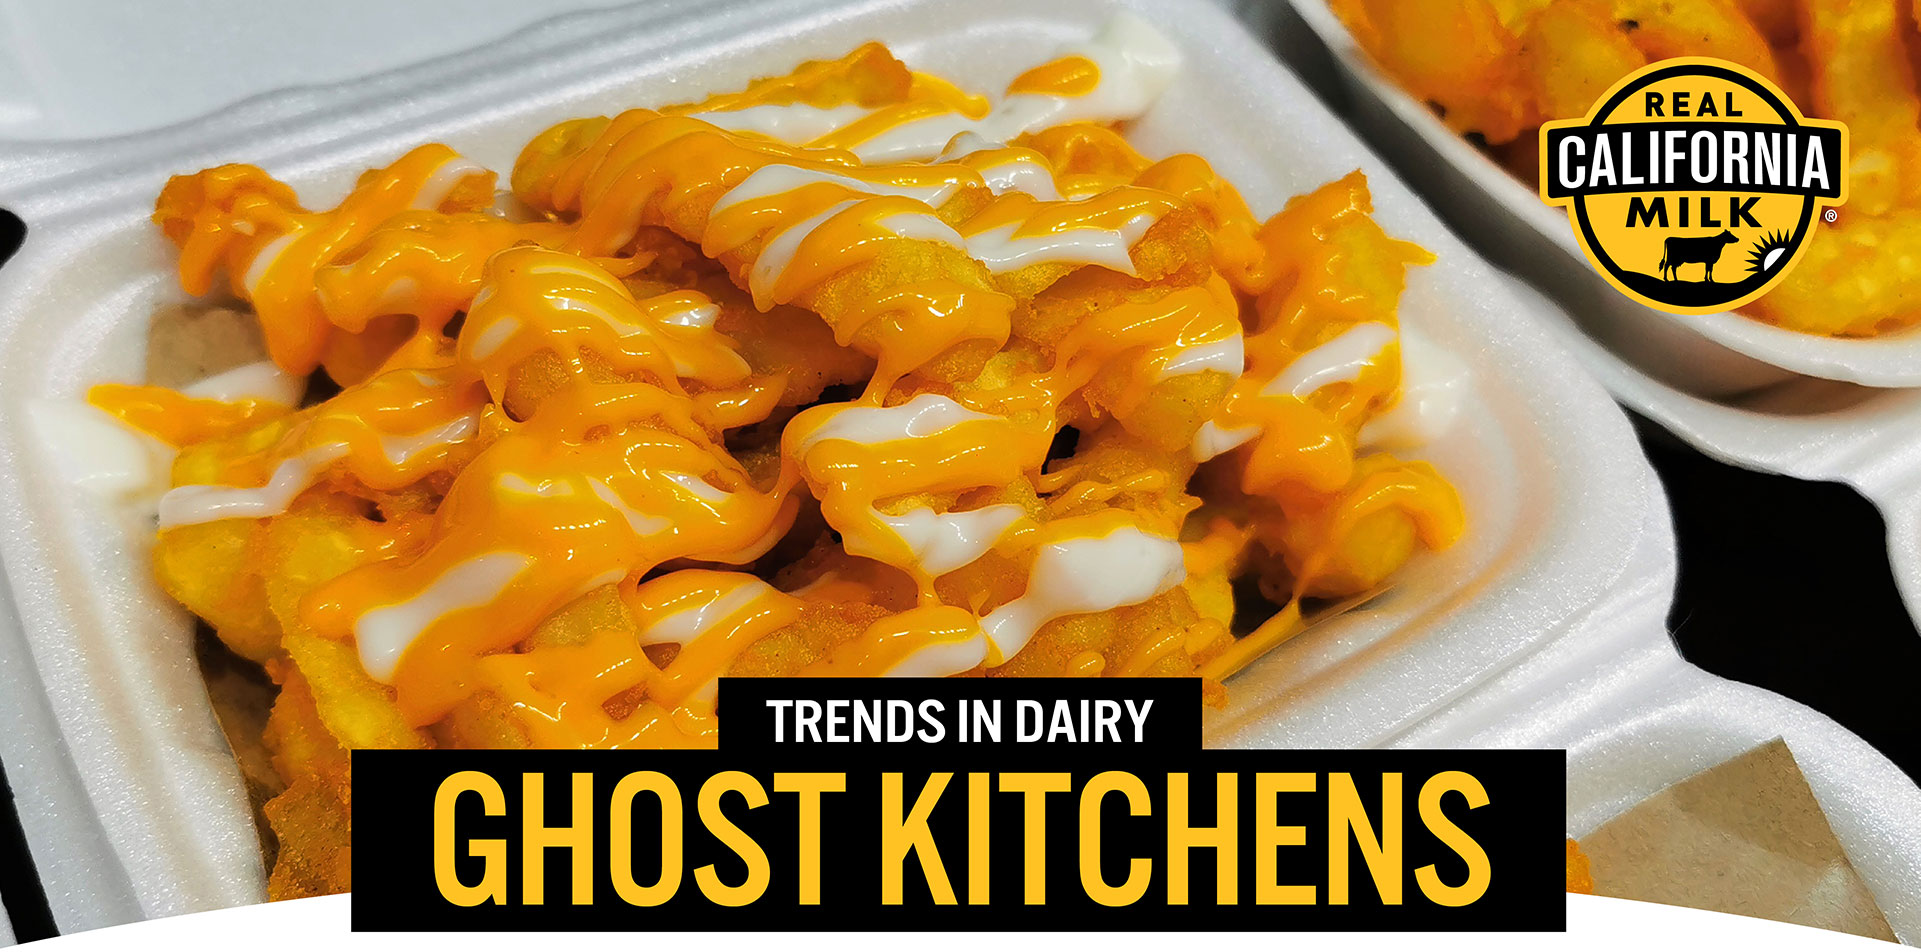 Trends in dairy: Ghost Kitchens